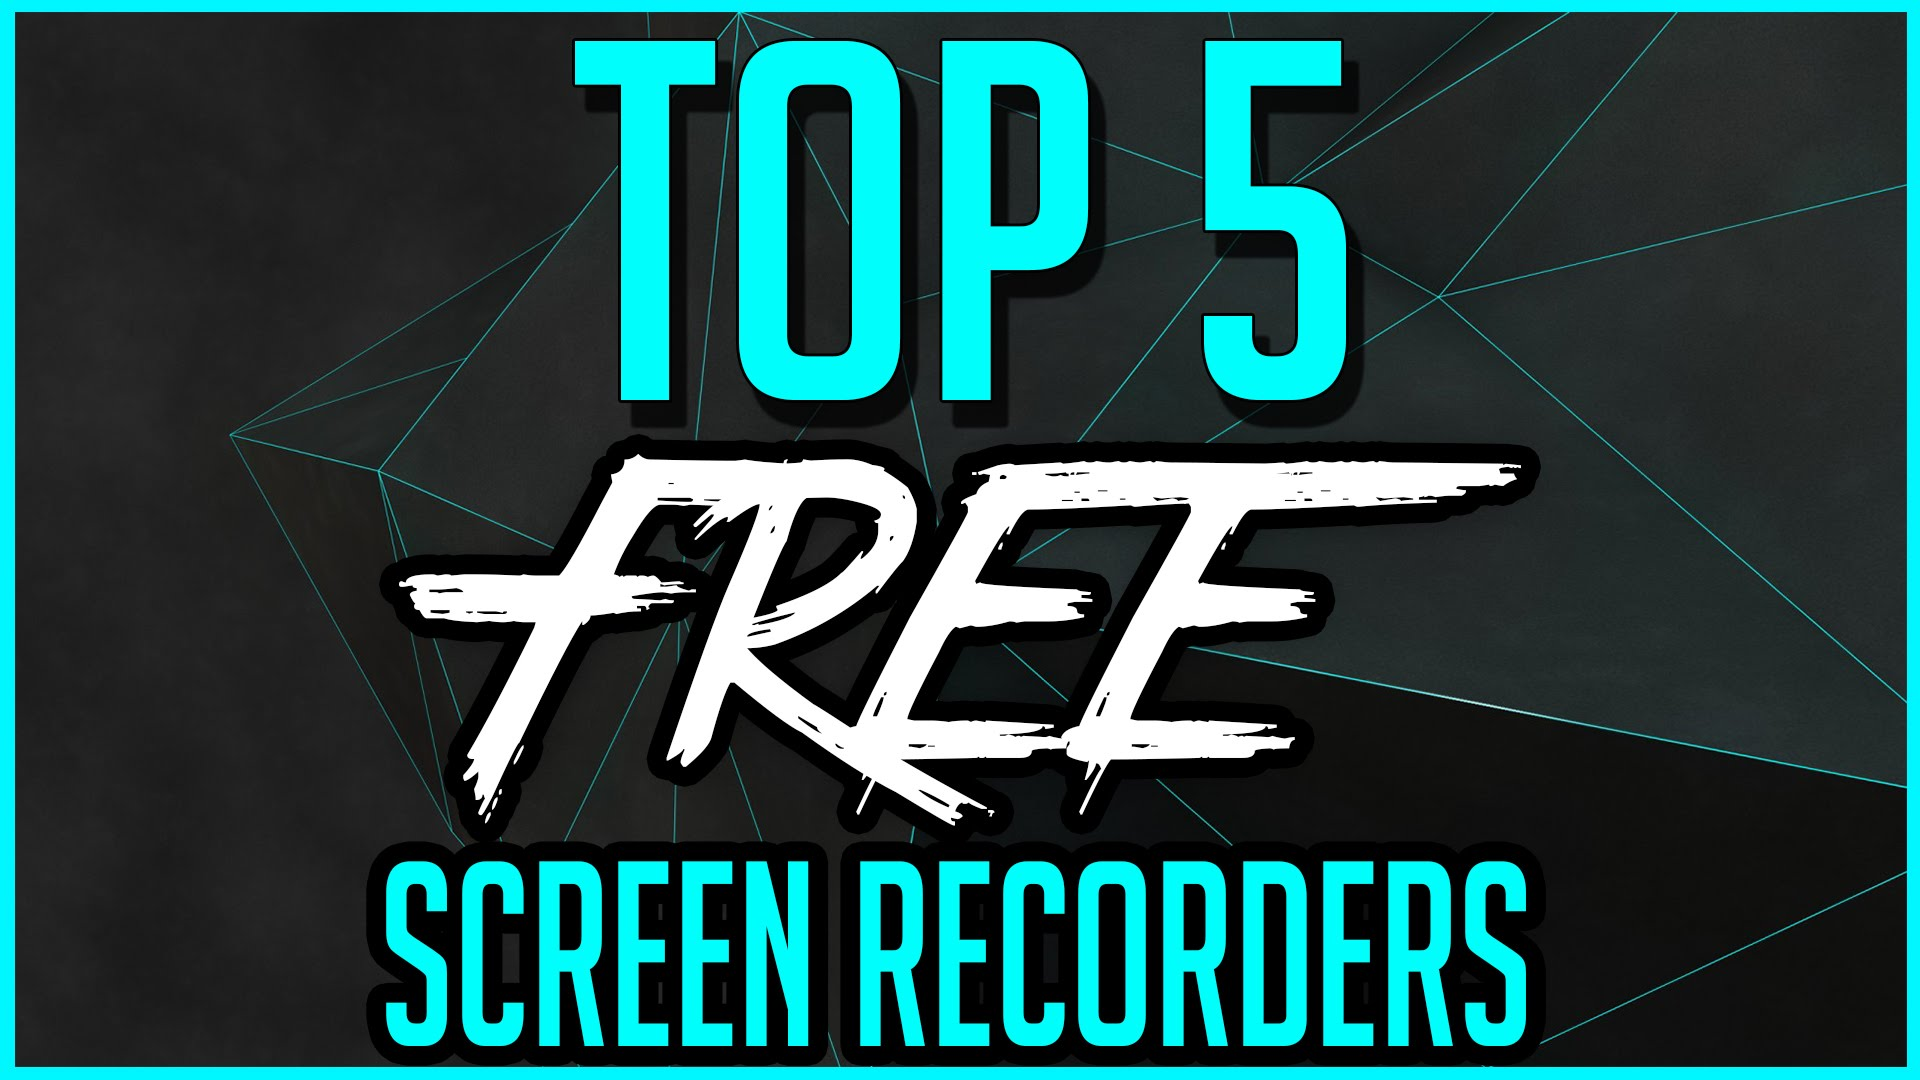 5+ Best Screen Capture, Recording Software Apps for PC